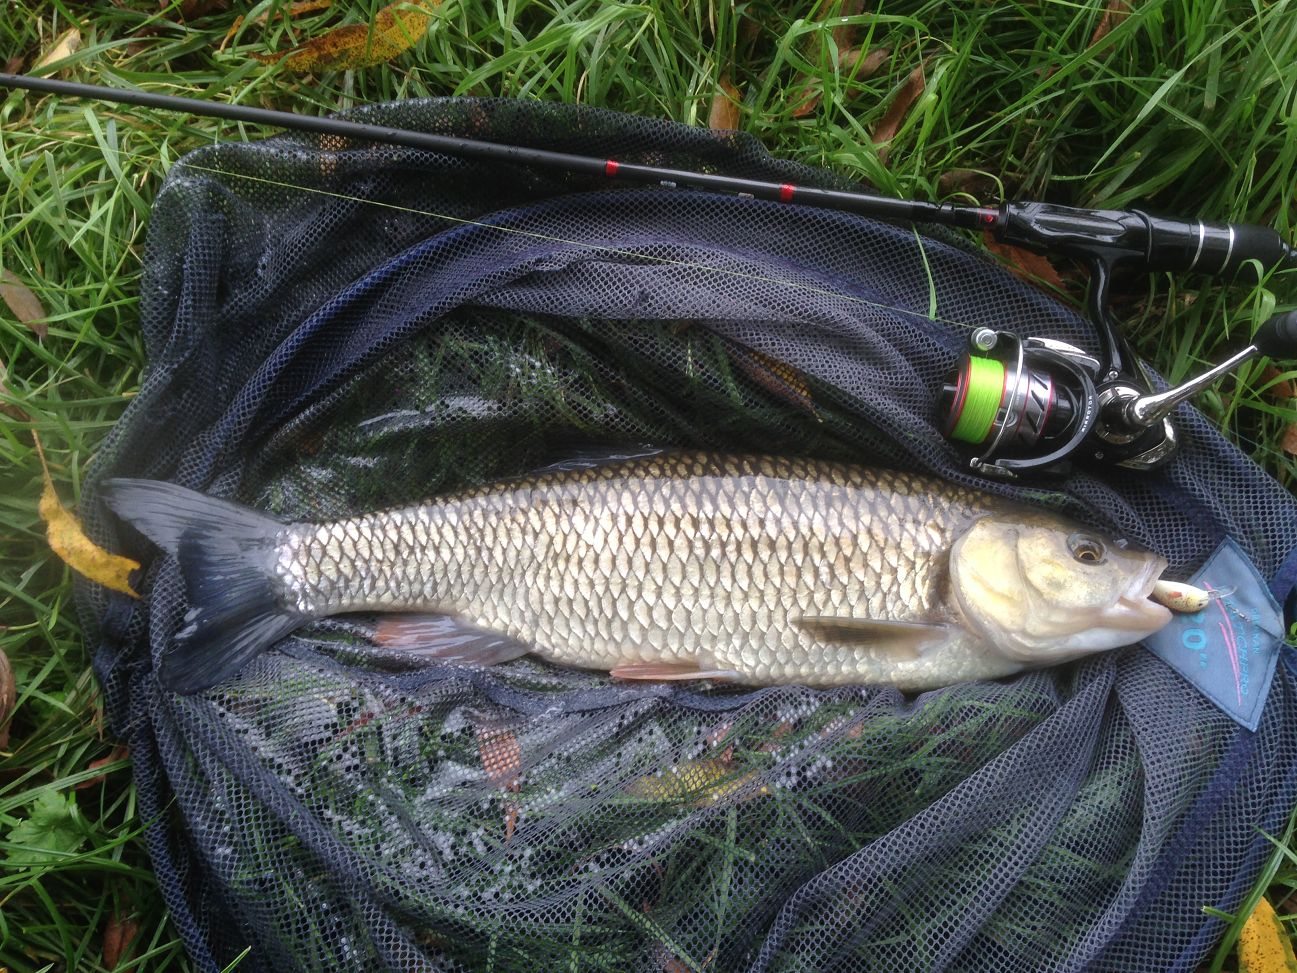 From 28, caught on lure you can still see in its mouth...